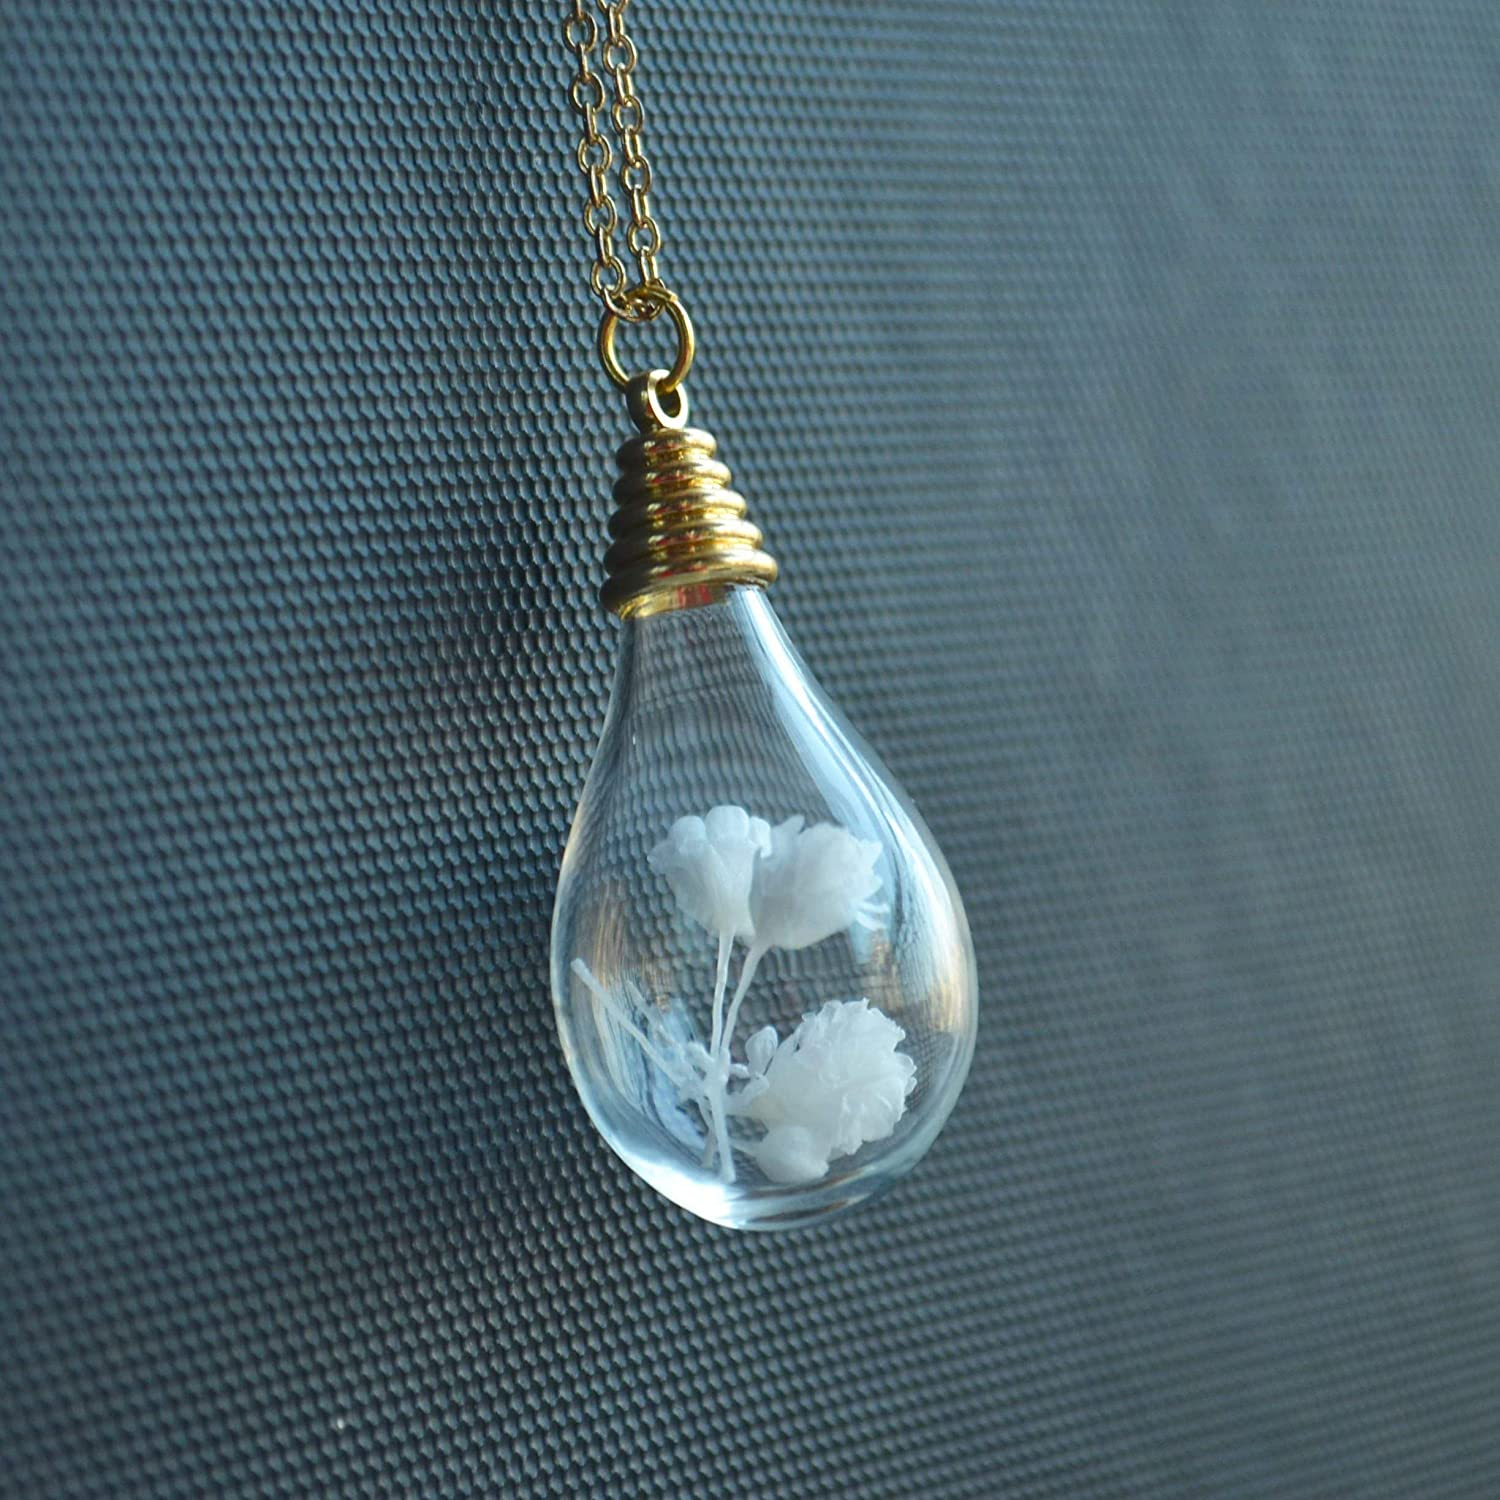 White Blooming Babysbreath Real Flower Waterdrop Pendant 18k Gold Plated Chain Long Necklace